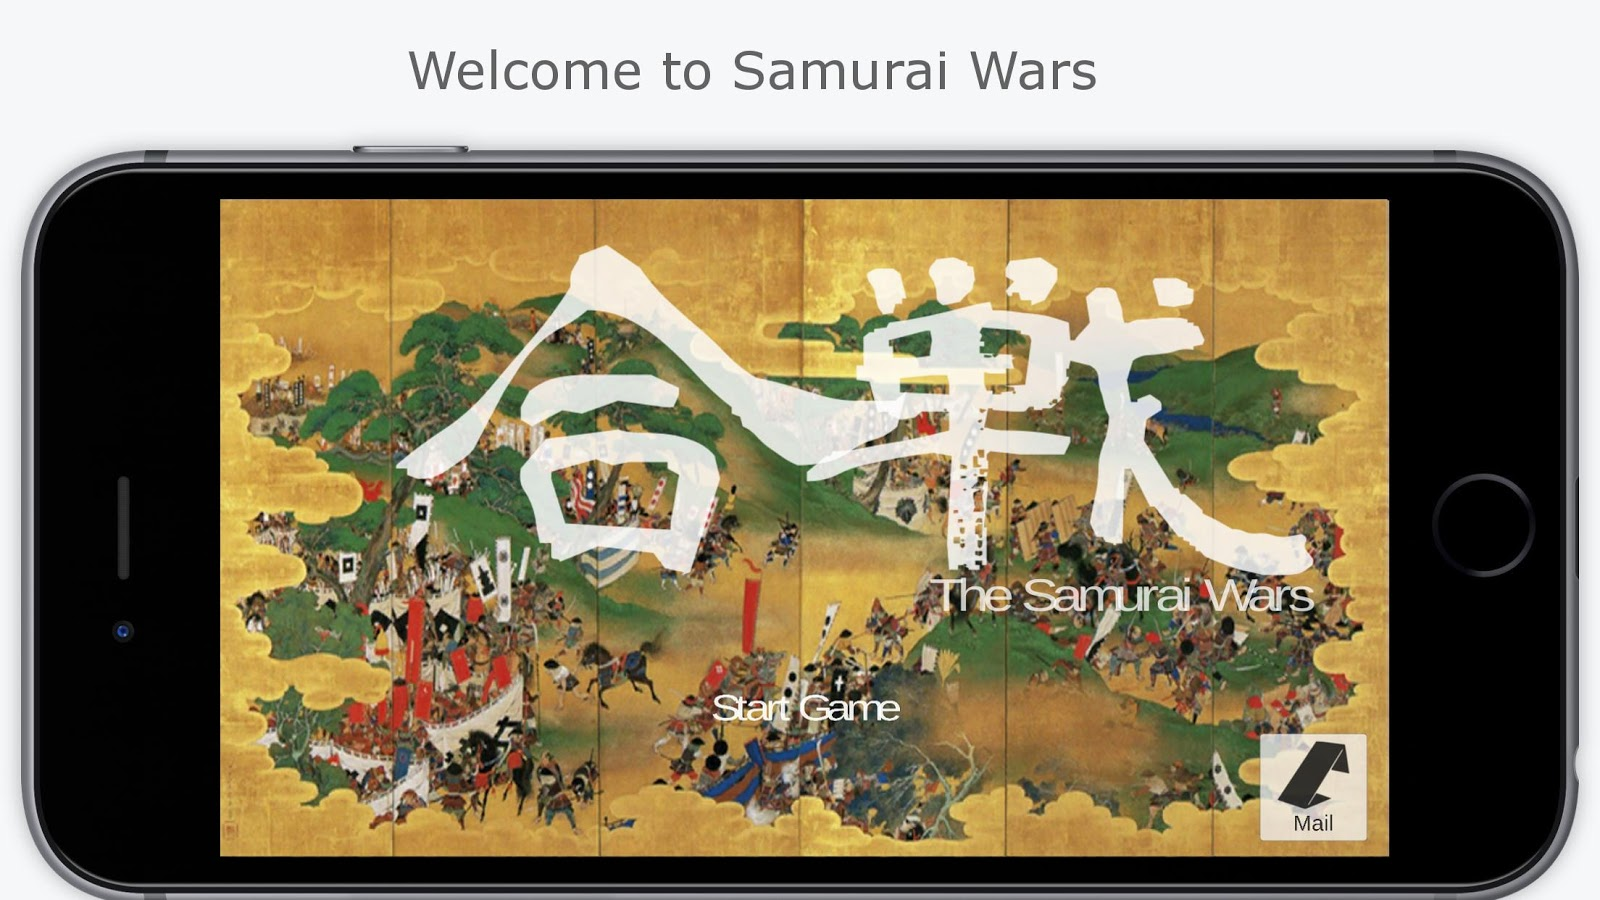 The Samurai Wars Screenshot 4